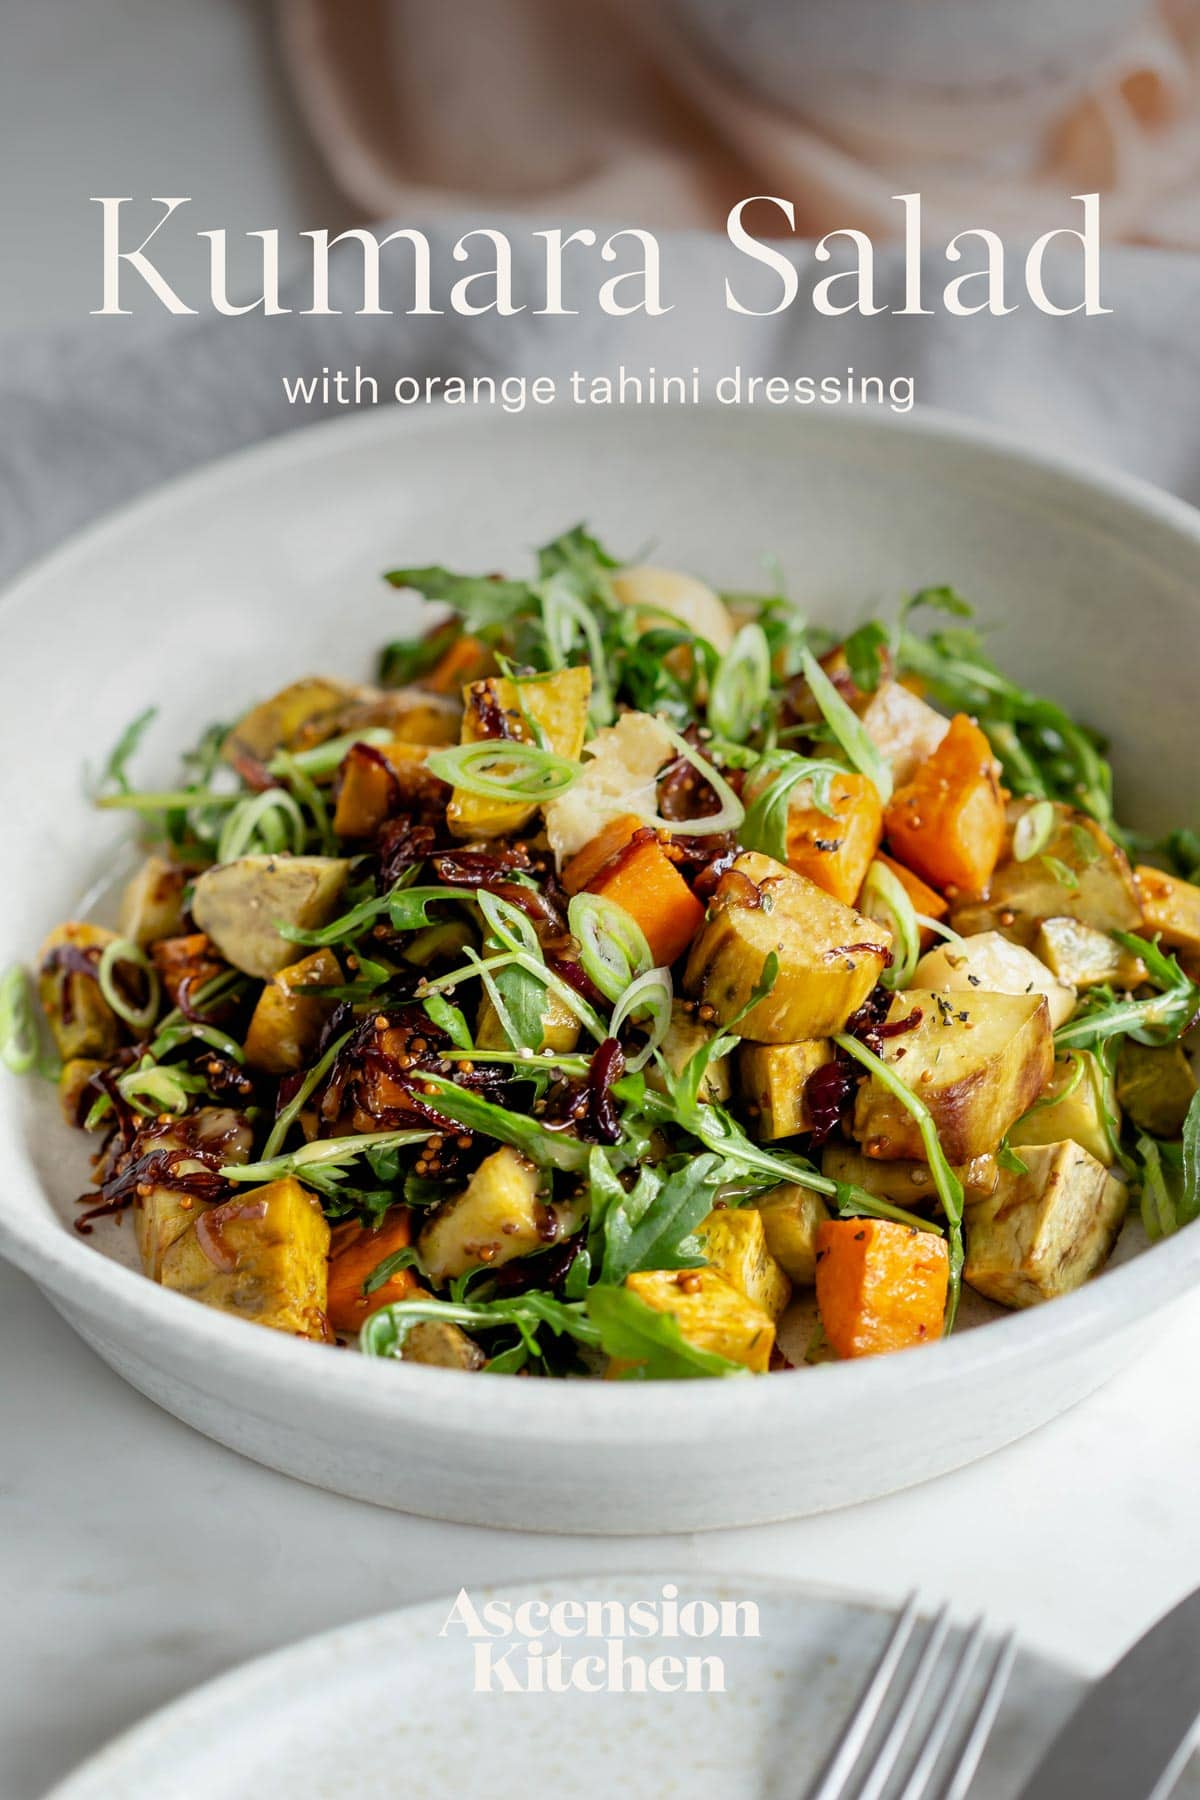 Bright and colourful Kumara Salad with a zingy Orange Tahini Dressing, in a ceramic dish